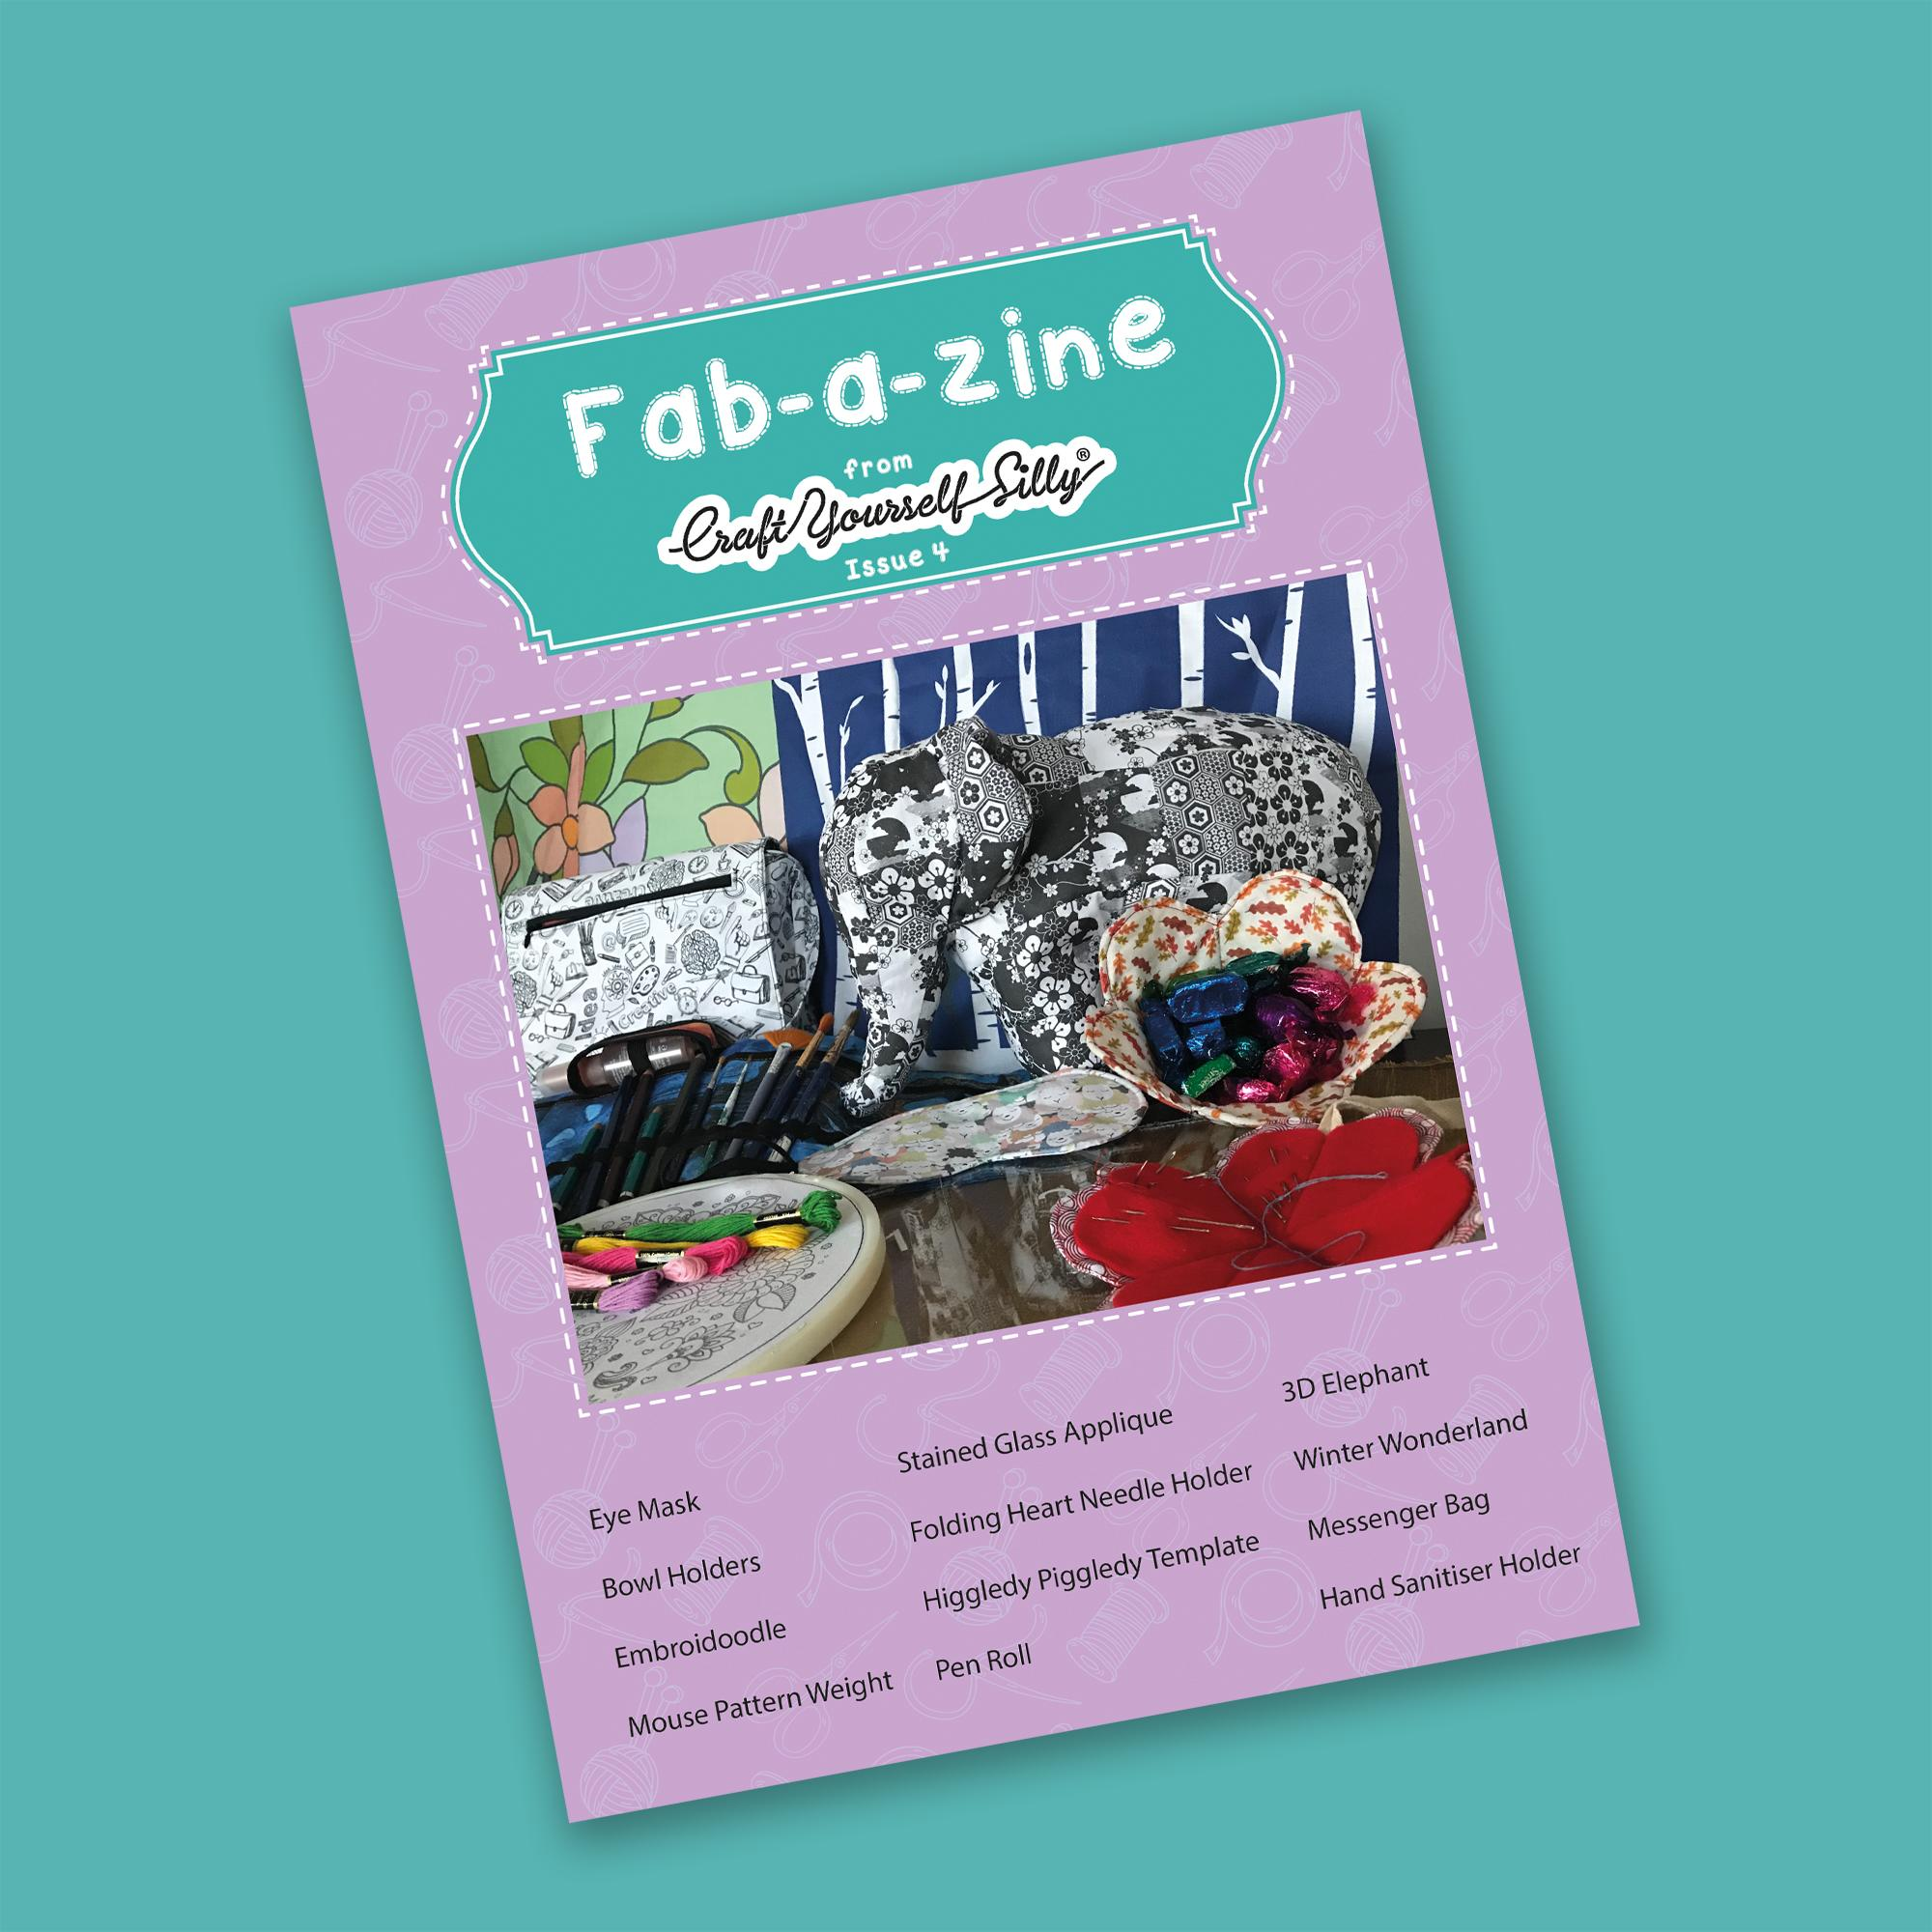 Fabazine review